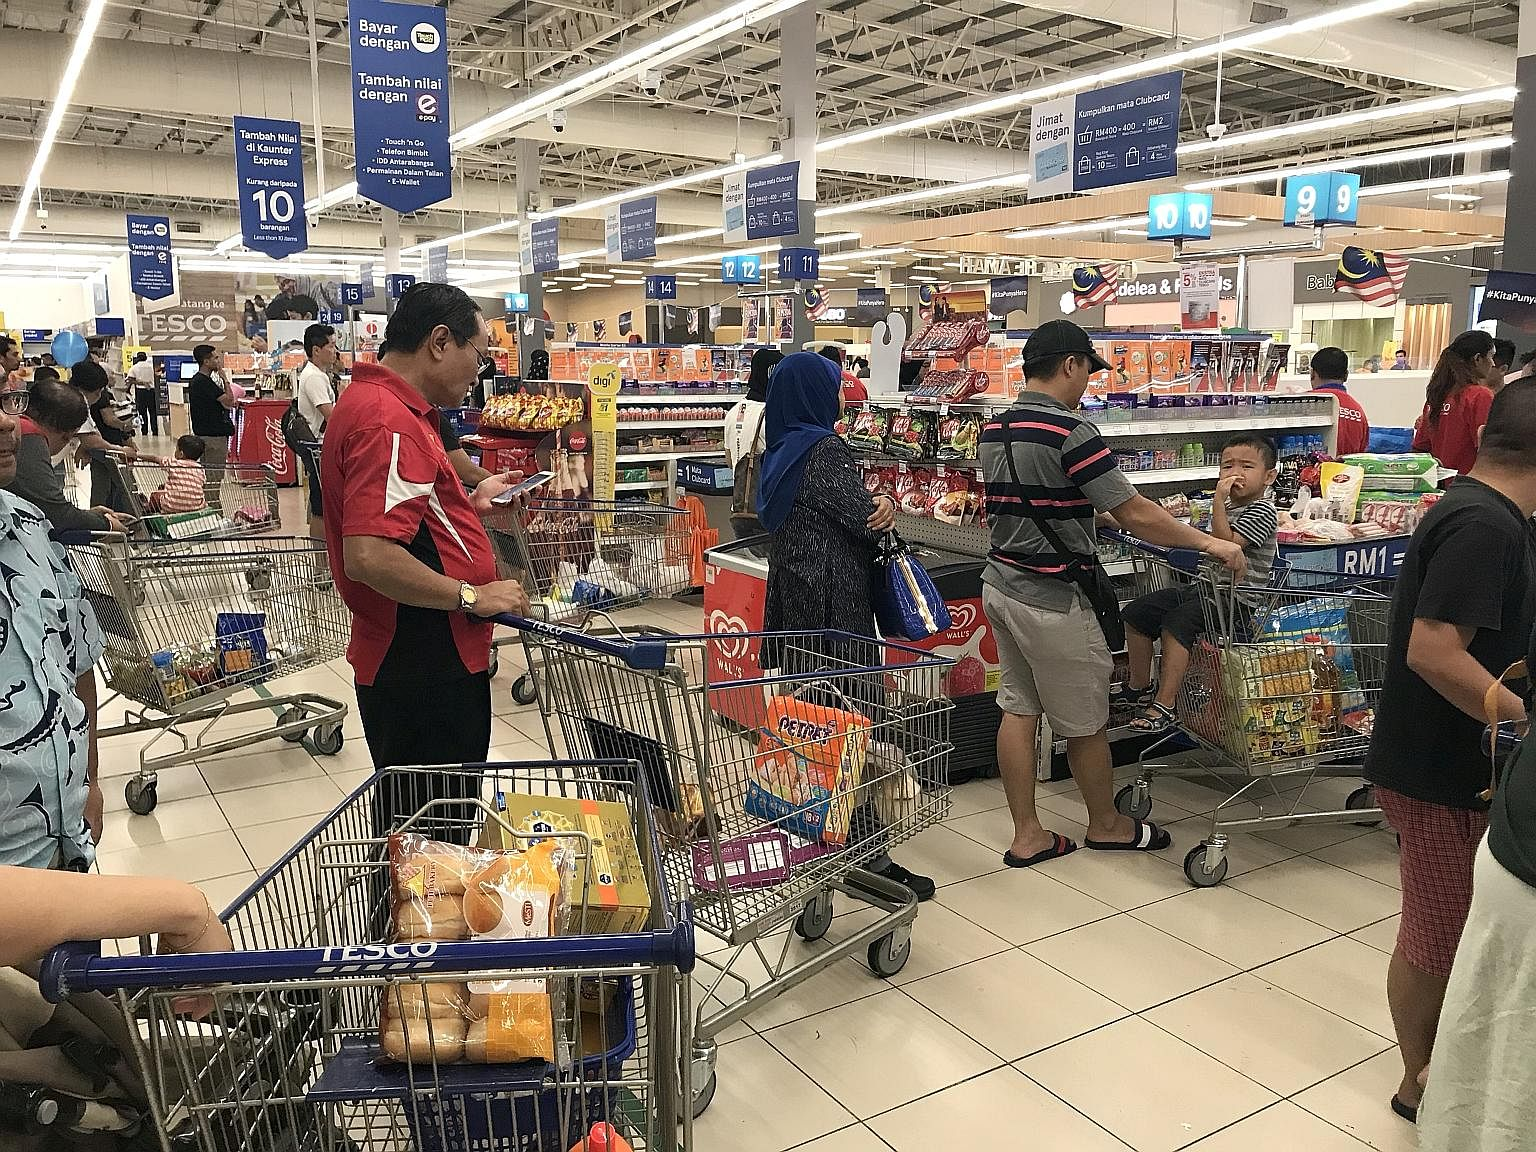 Long queues formed at Tesco Shah Alam in Selangor on Thursday as Malaysians did some last-minute shopping before the SST. Despite items such as eggs being exempt, some shoppers are stocking up anyway.